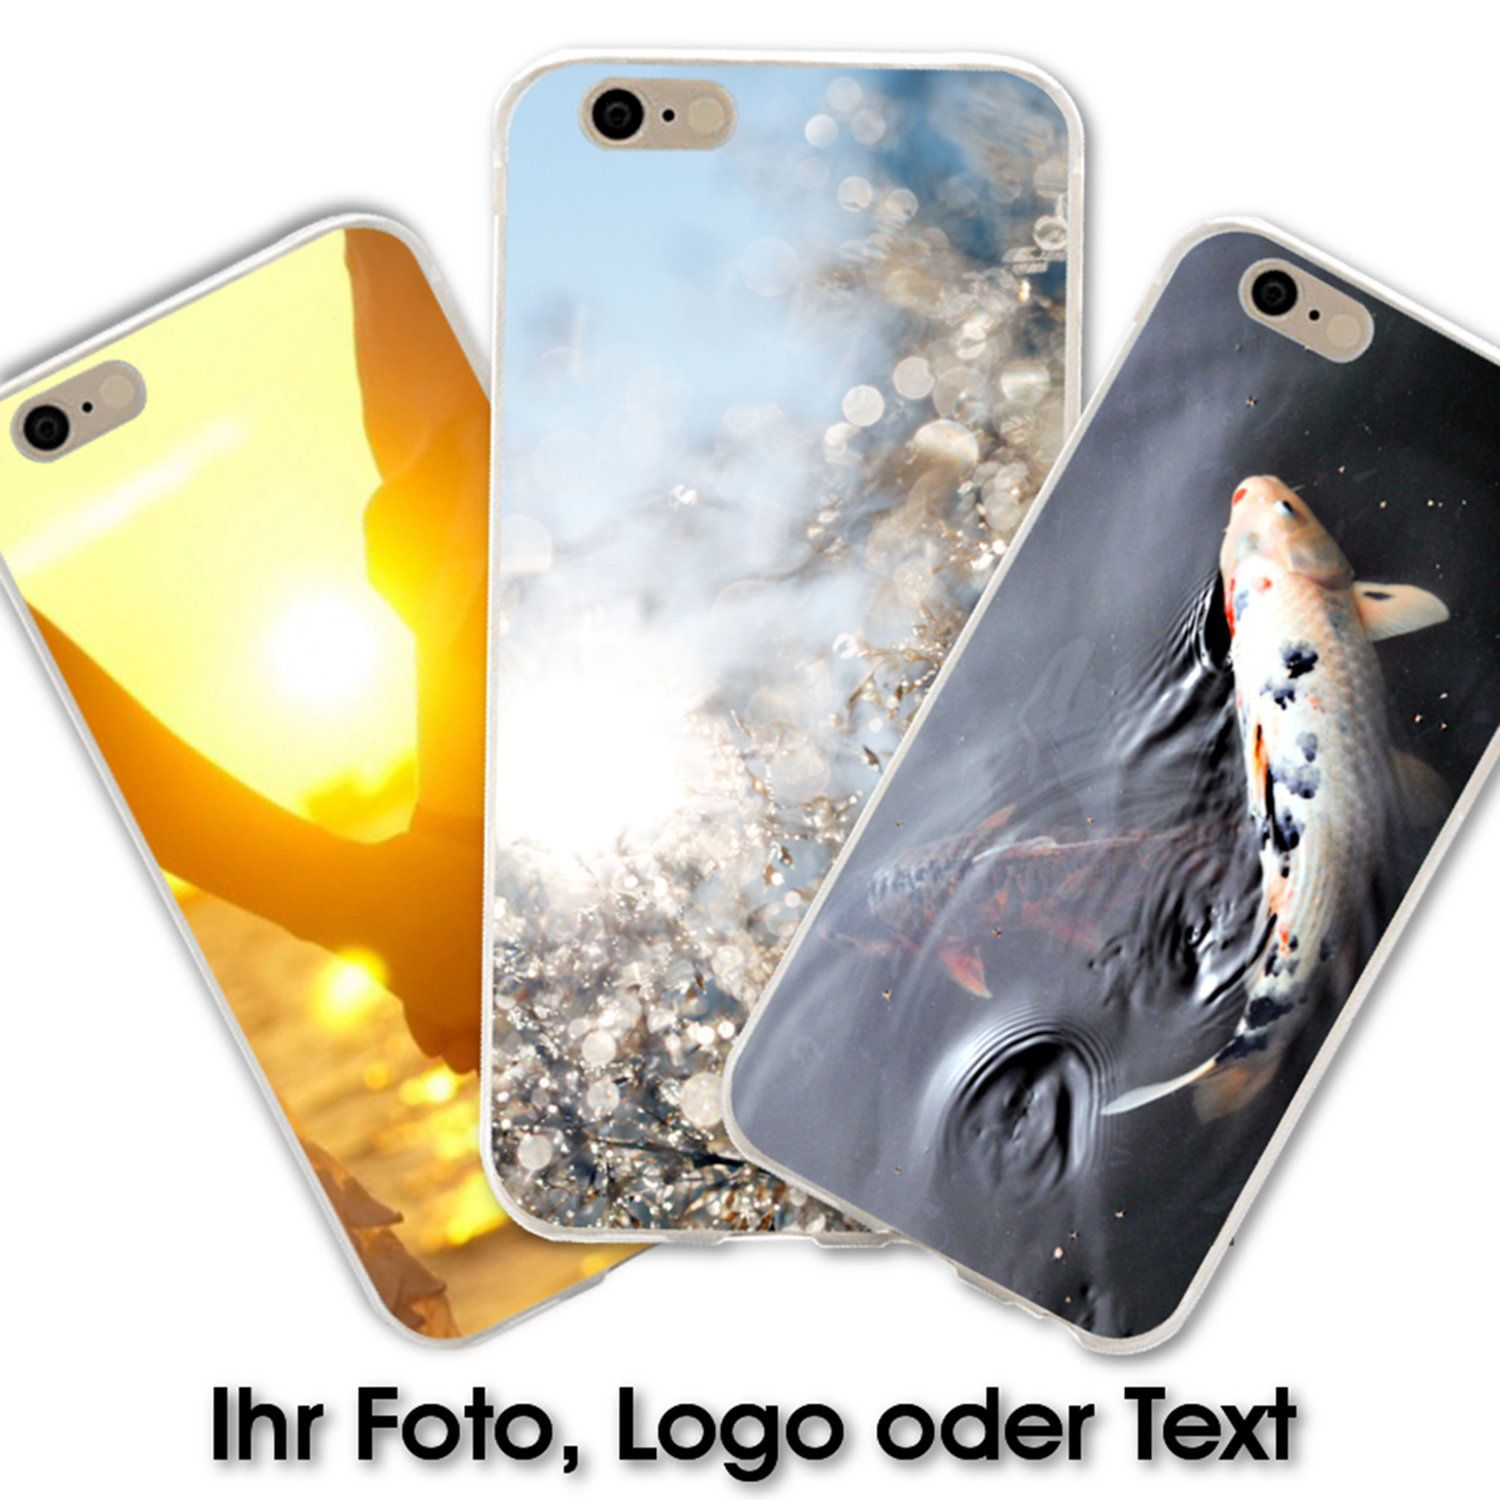 Design Foto Hulle Fur Samsung Galaxy A10 Personalisierte Handy Hulle Mit Individuellem Foto Text Oder Motiv Personalized Phone Cases Phone Cases Design Case